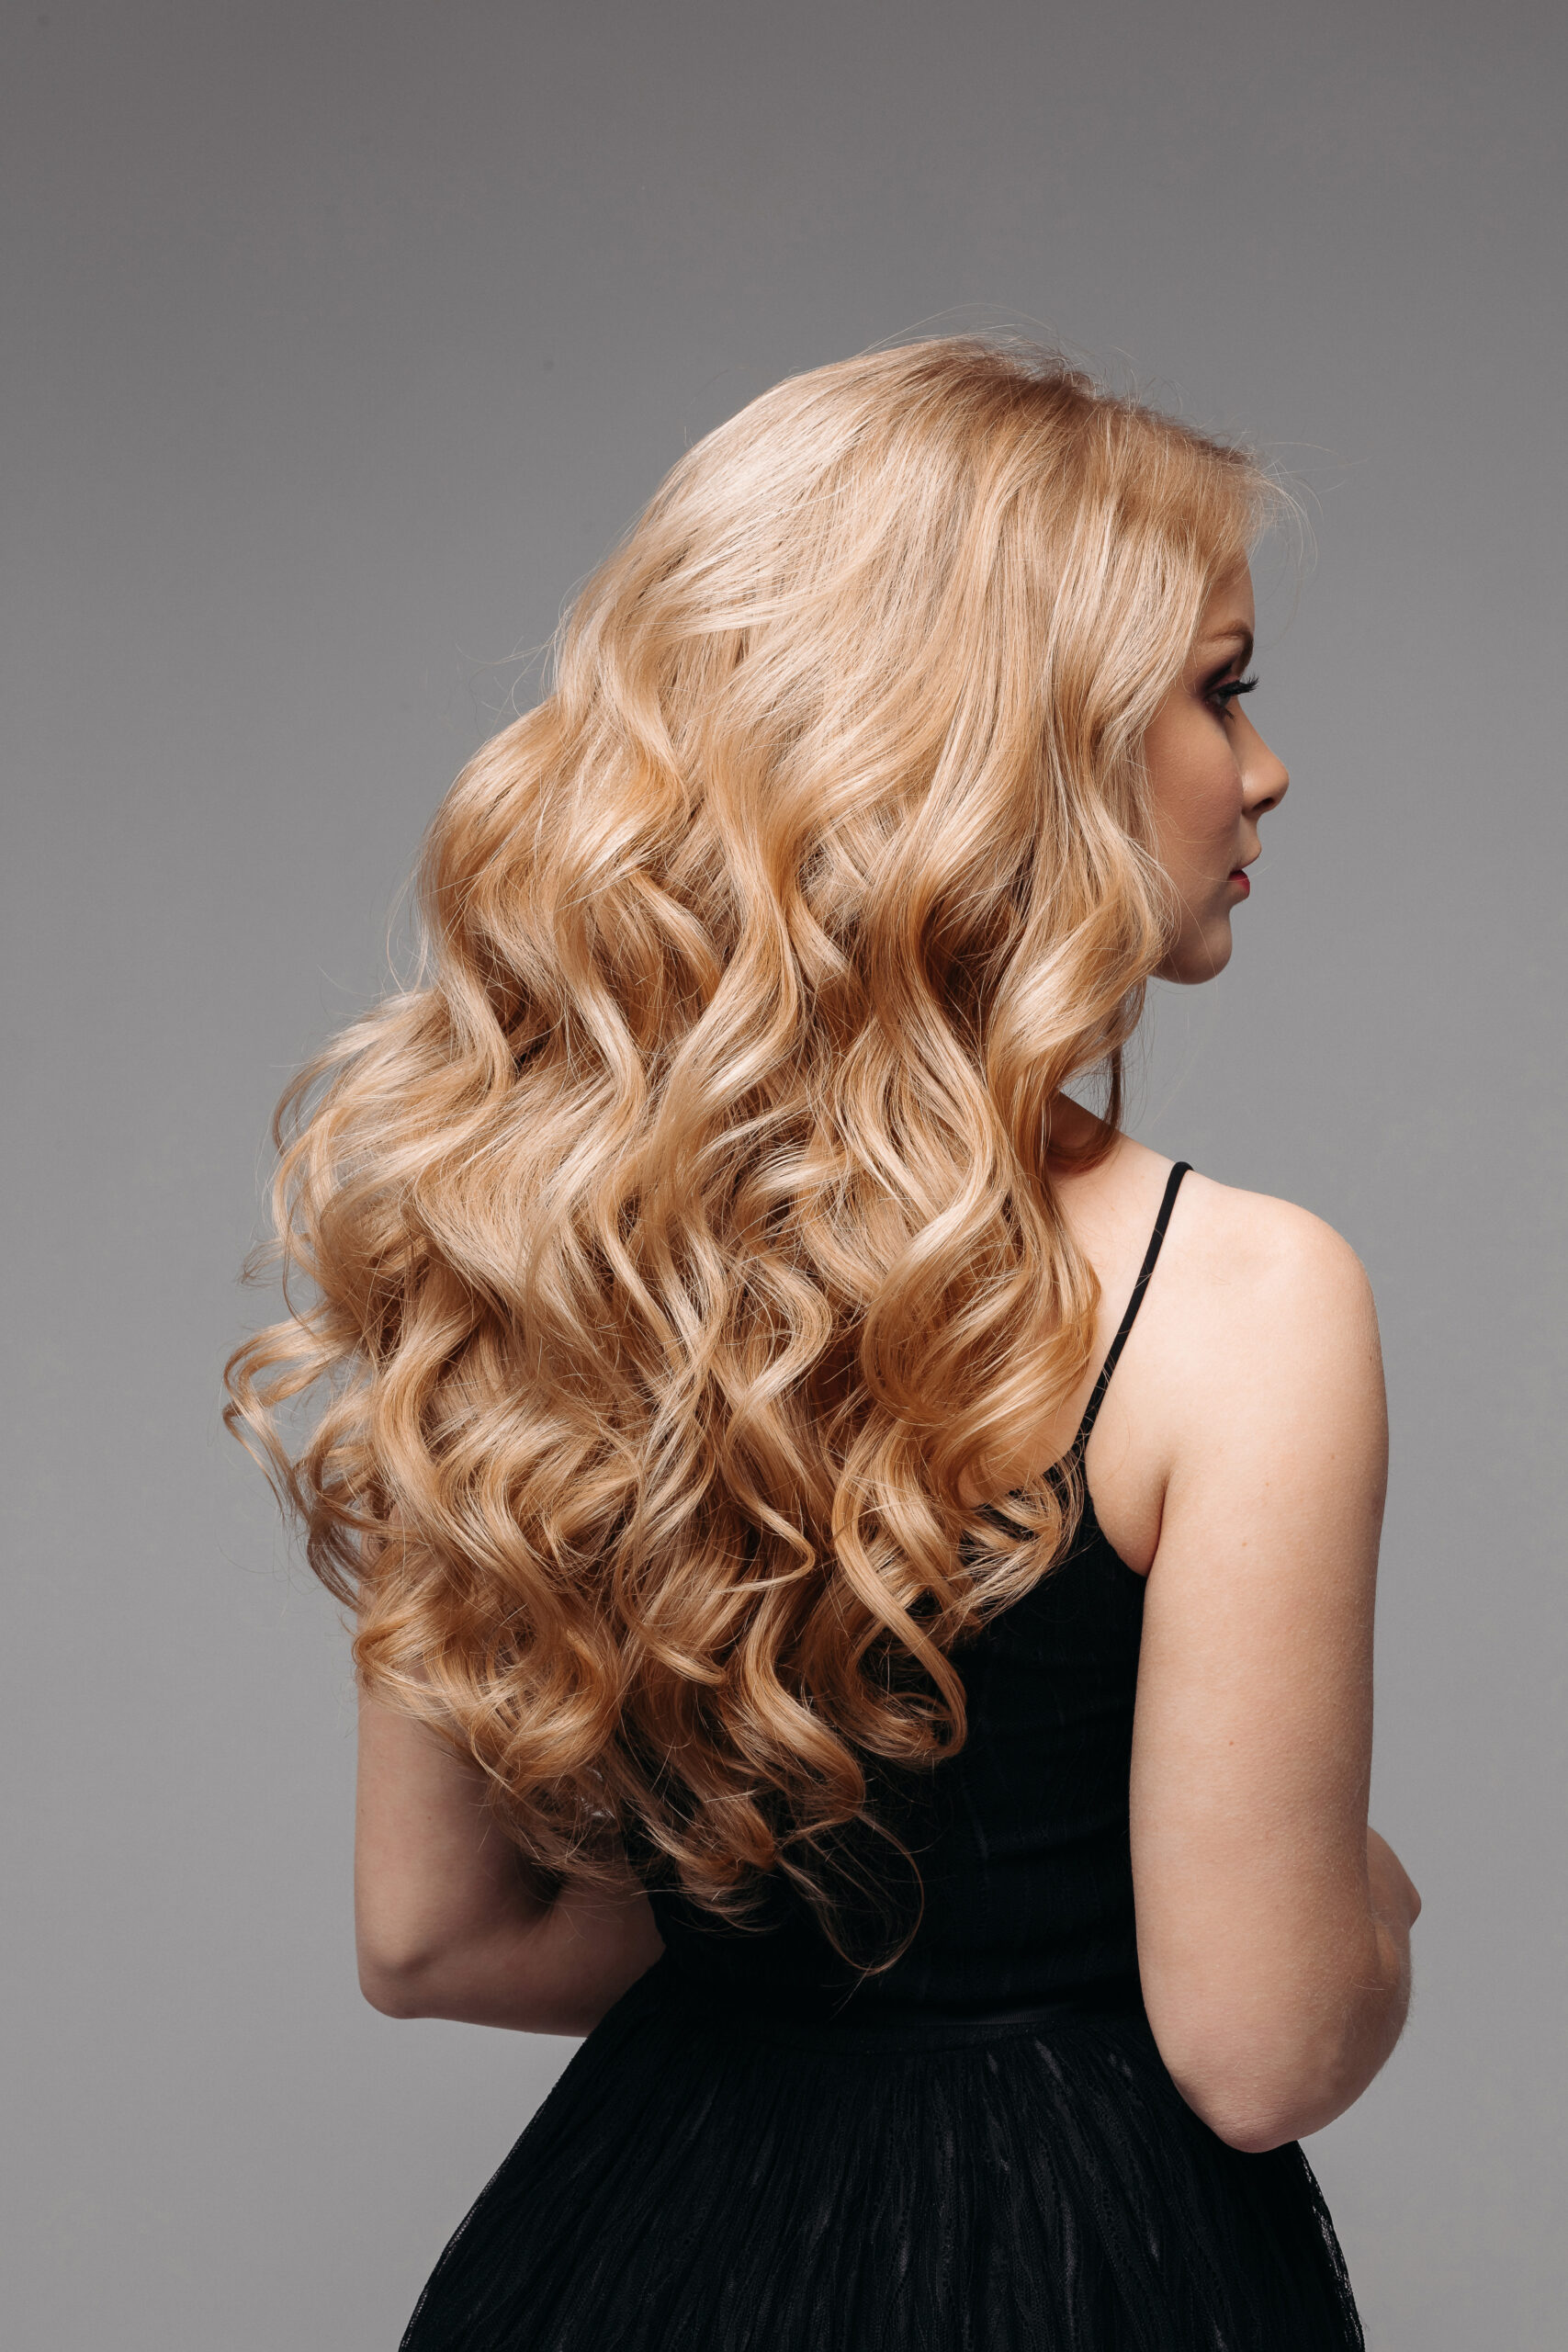 Back view of unrecognizable woman in black with volumous, blonde wavy hair over grey background. Isolated on grey. Studio. Perfect healthy hair. Hairdresser.